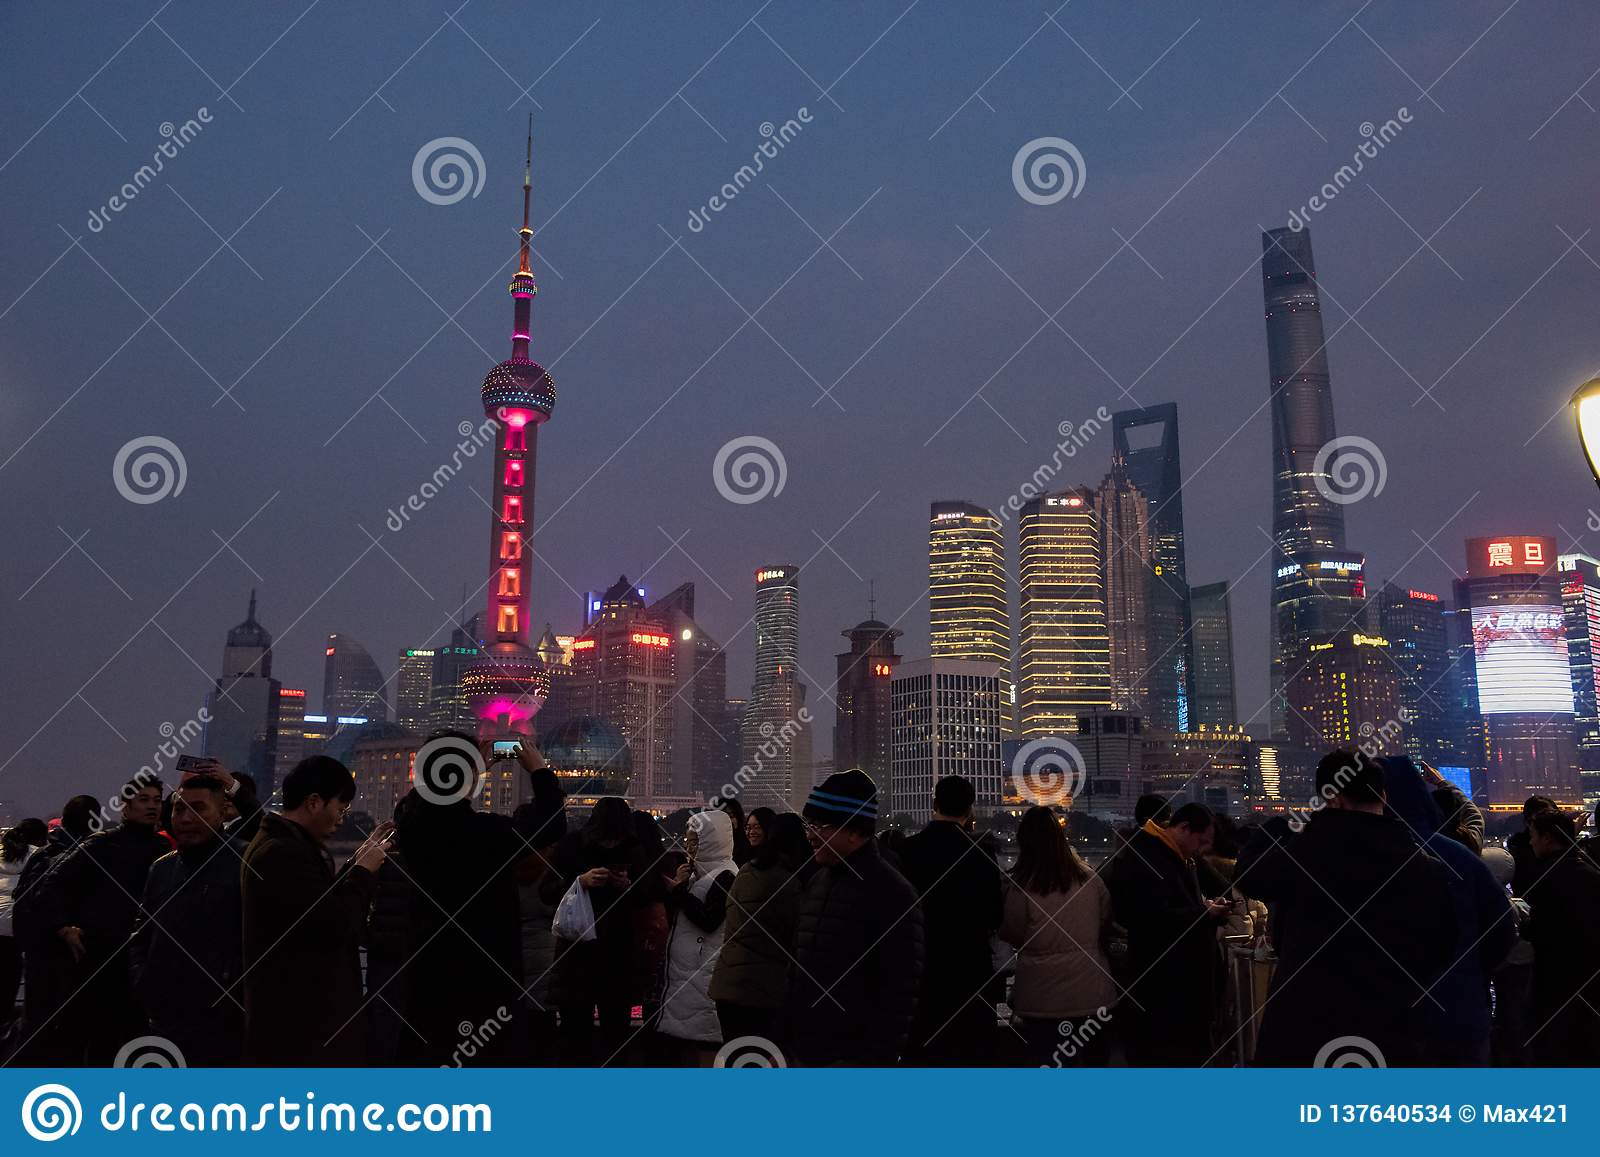 Crowds gather at Waitan to view the Oriental Pearl Tower